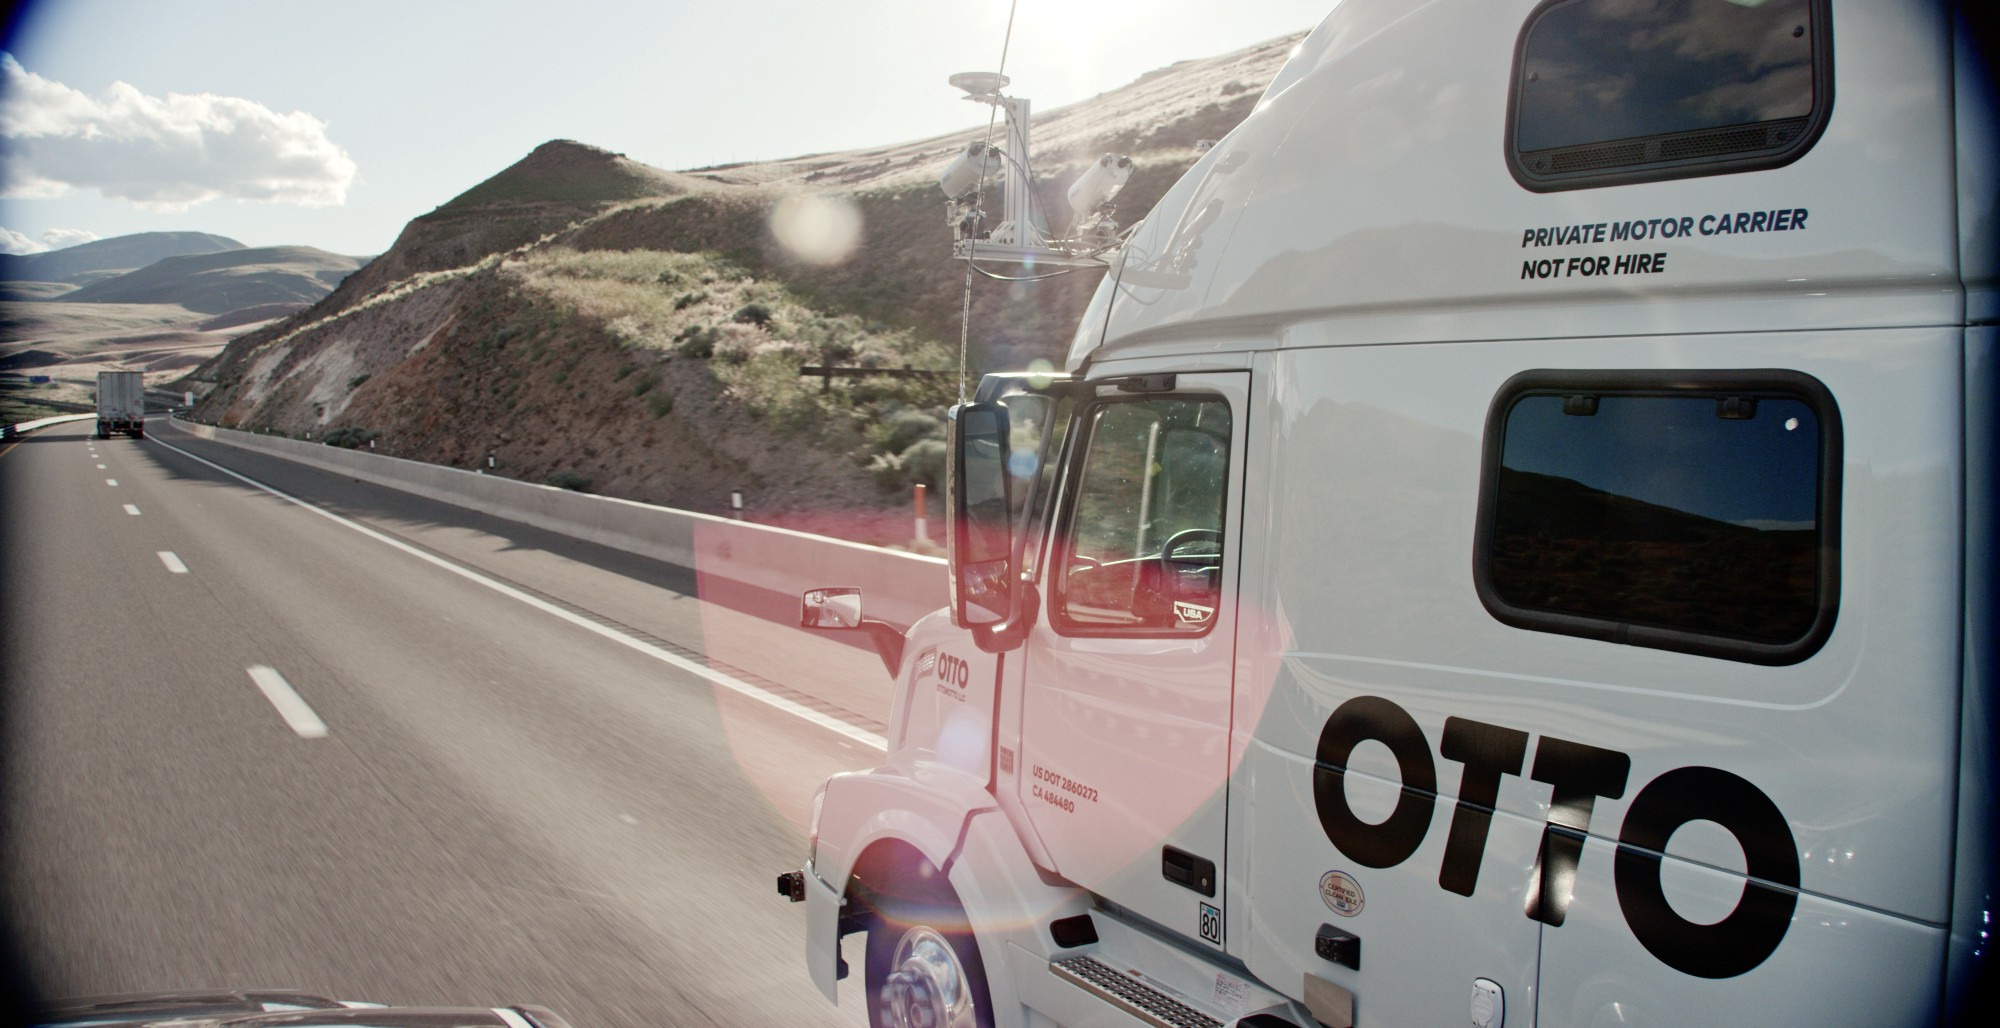 Uber is acquiring Otto, a startup focused on the automation of America's 4.3 million commercial trucks